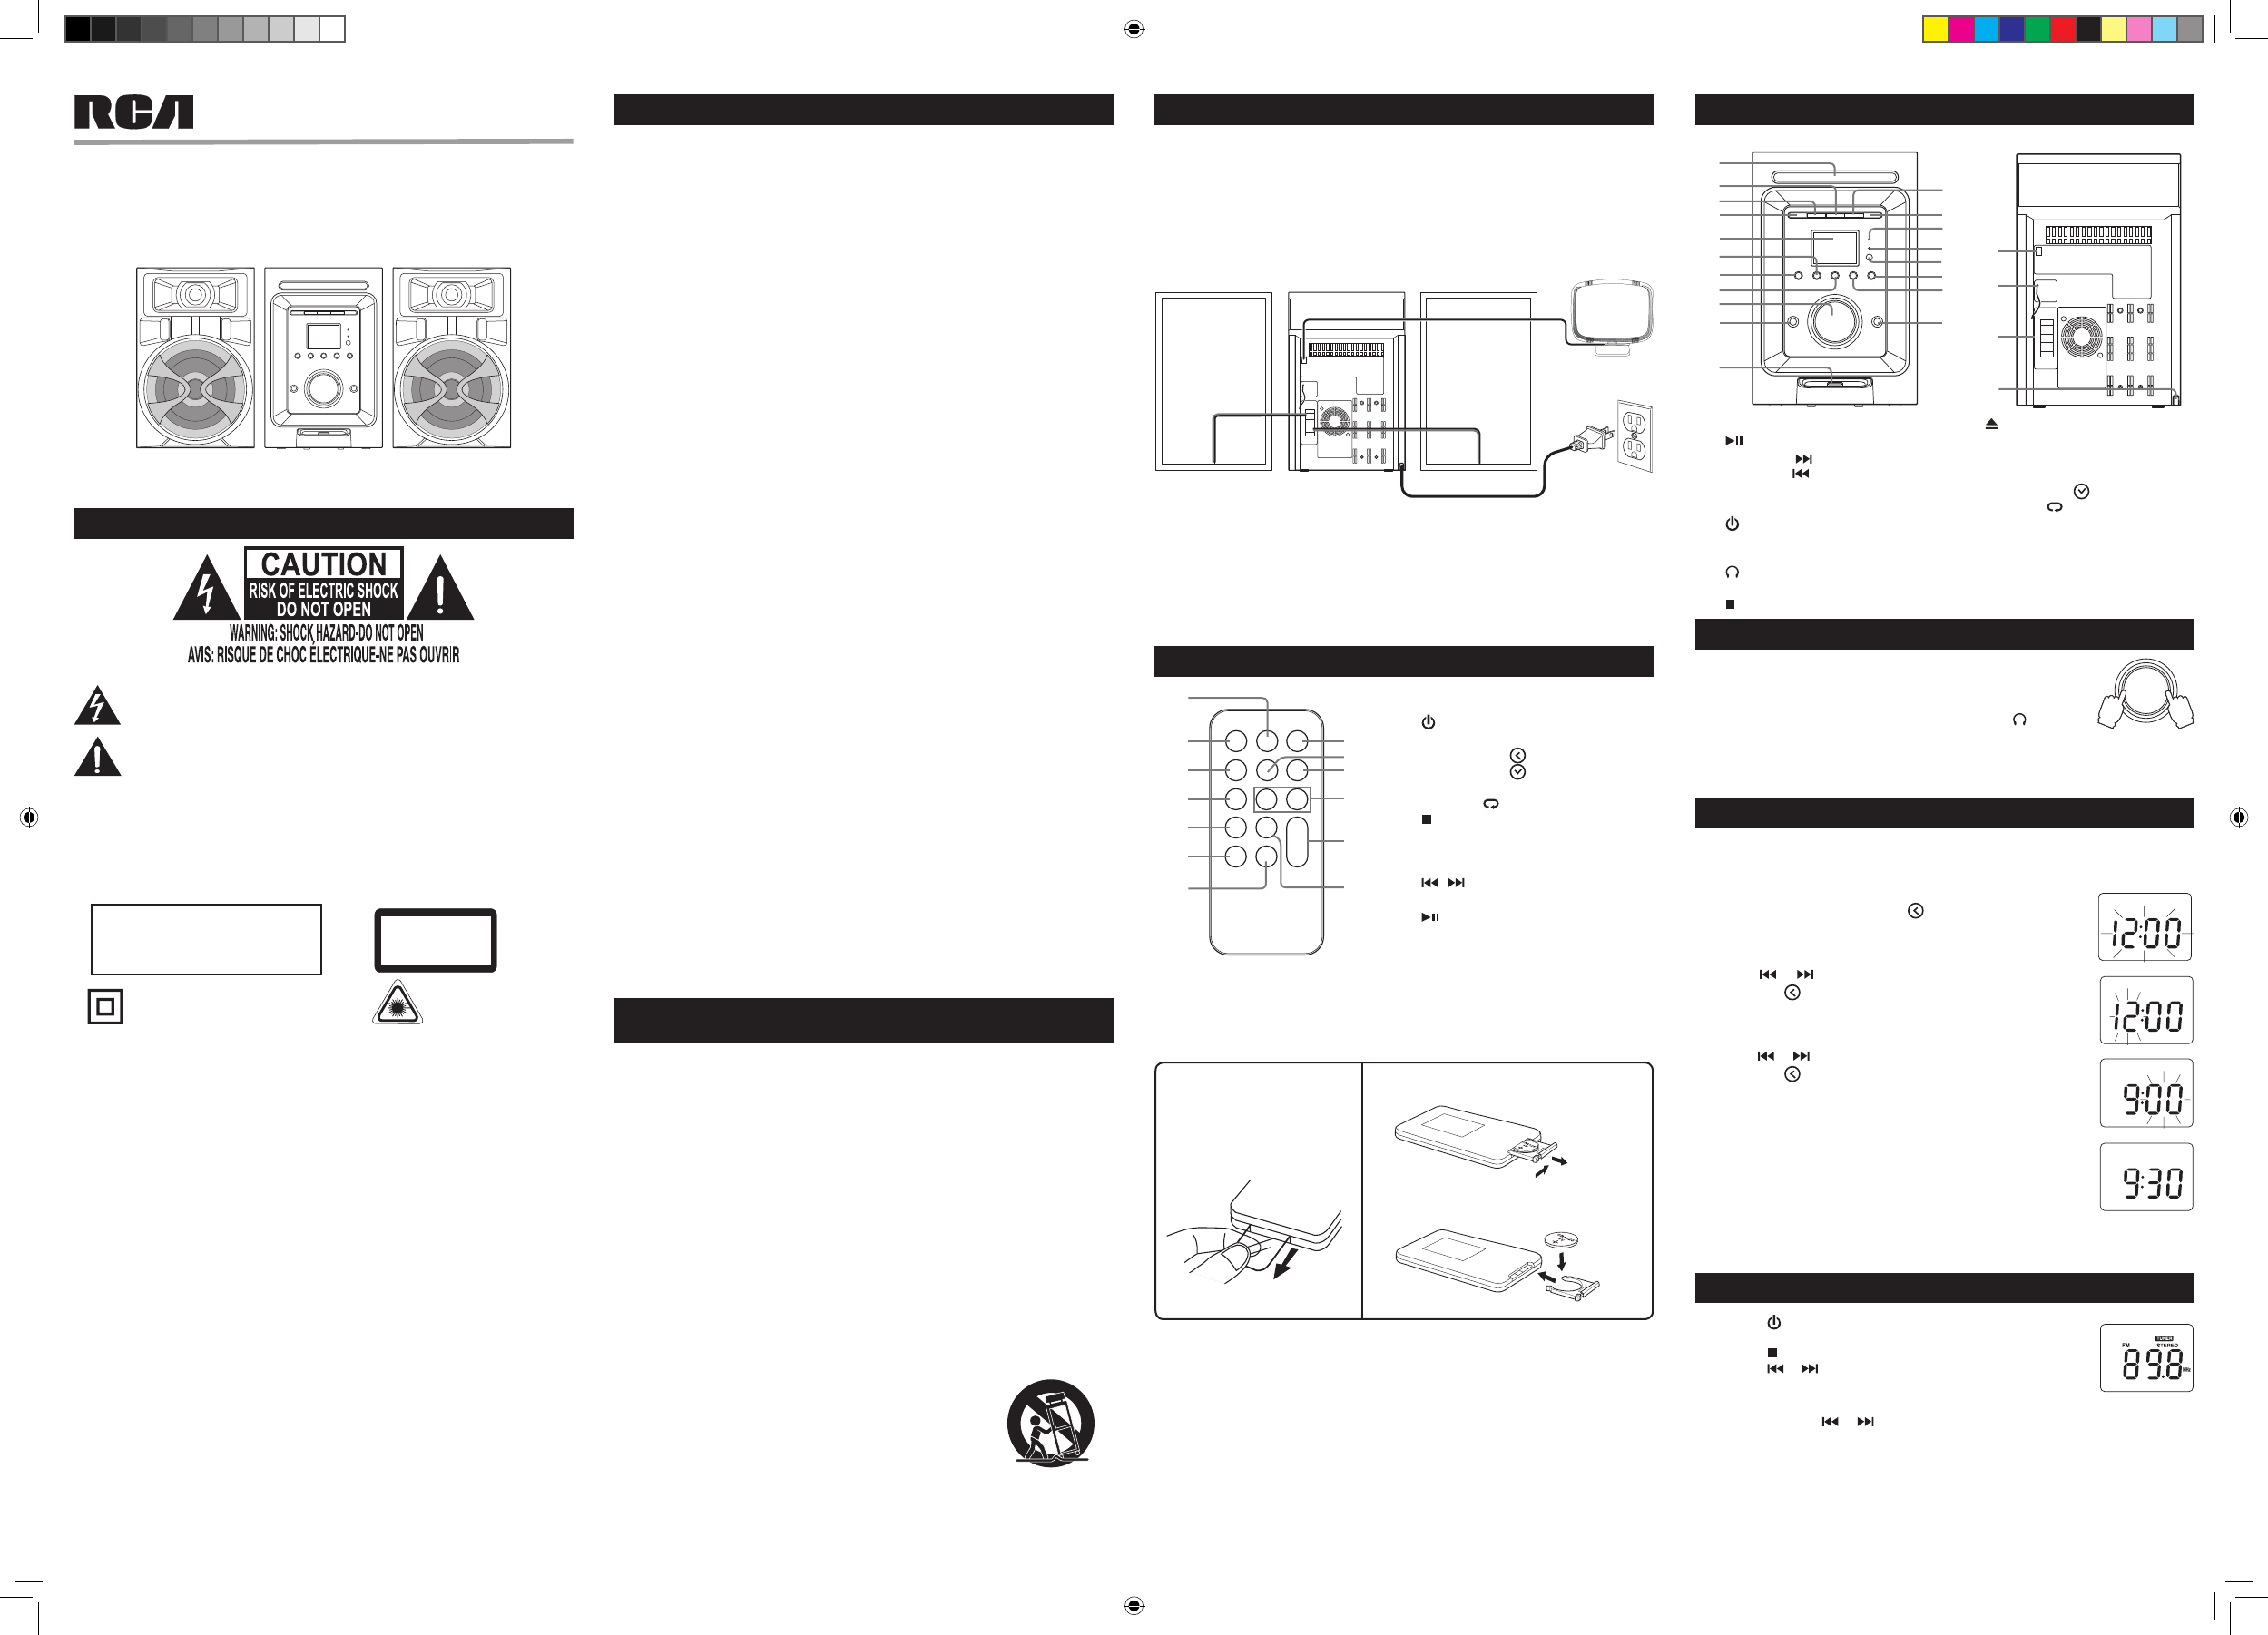 Rca Stereo System Rs I User Guide